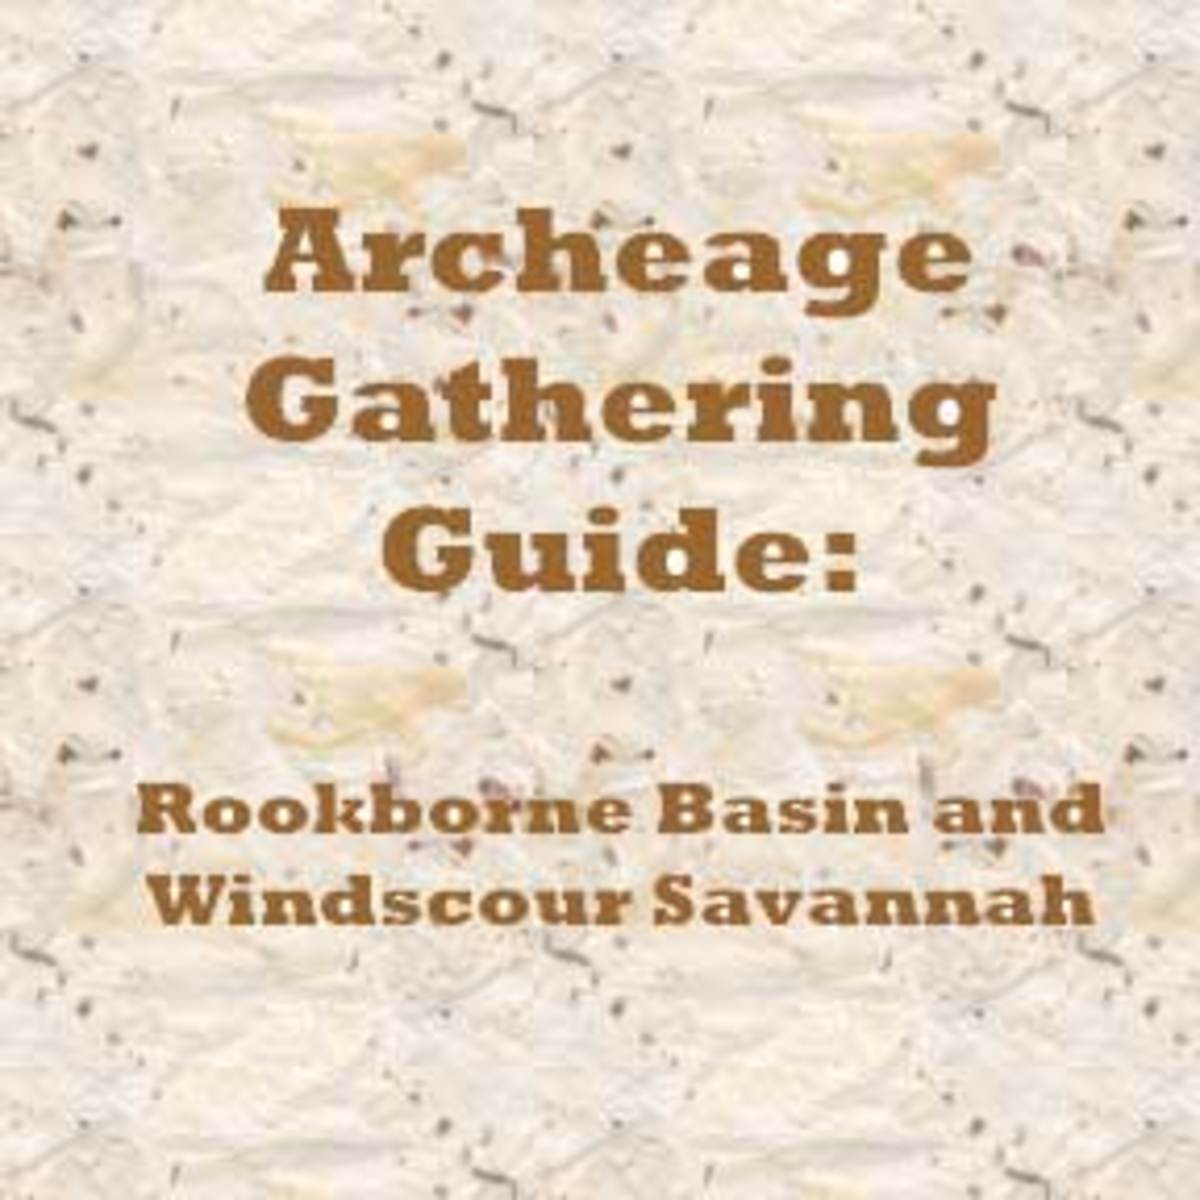 """Archeage"": A Gathering Guide for Rookborne Basin and Windscour Savannah"